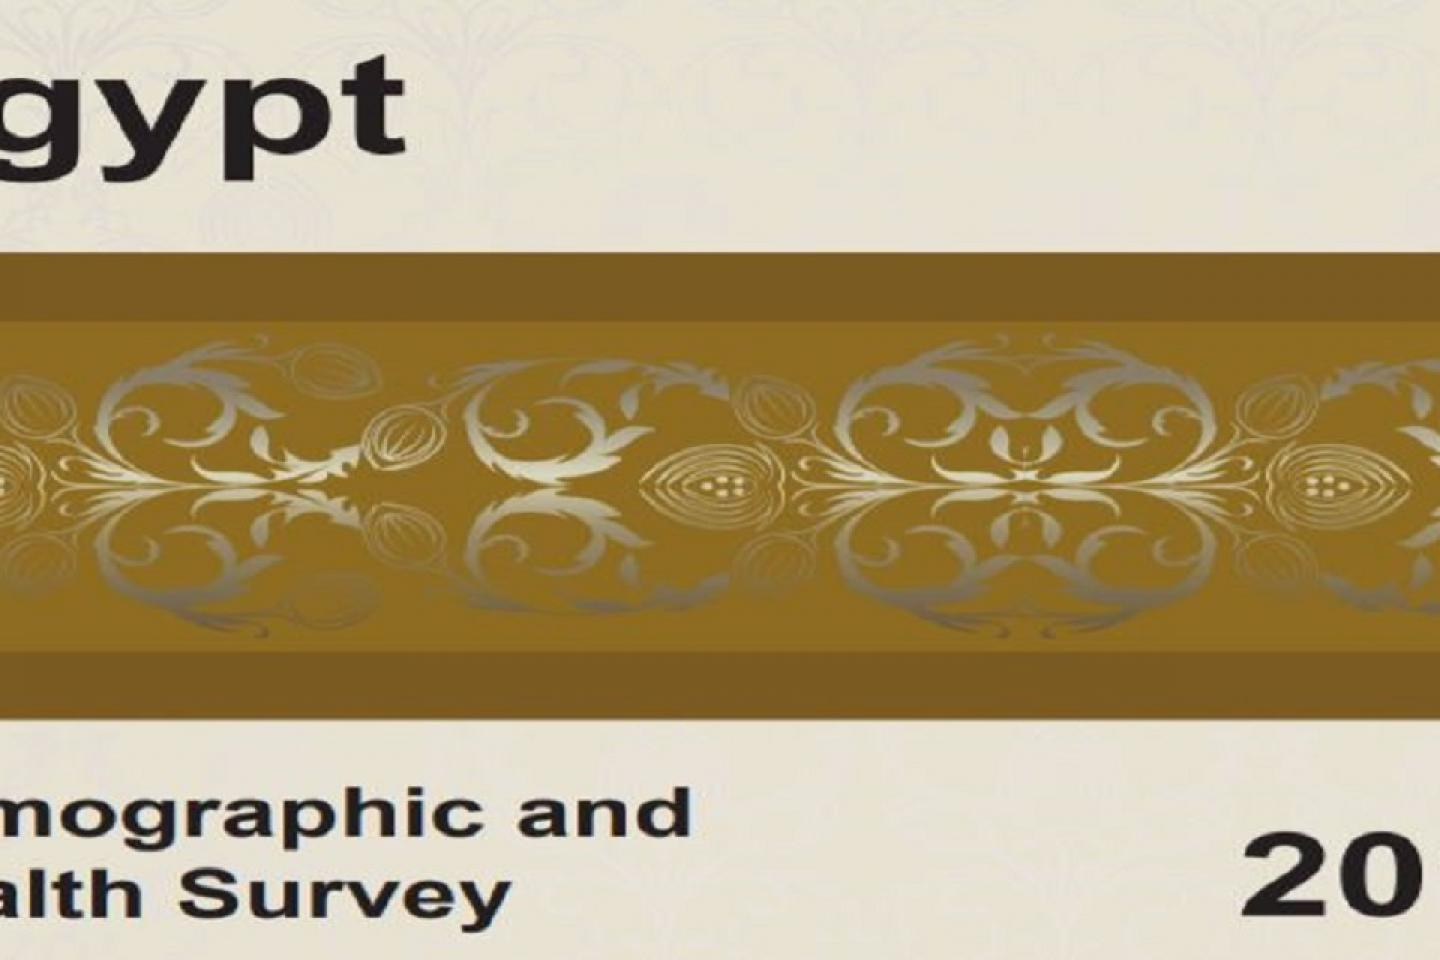 Egypt Demographic and Health Survey 2014